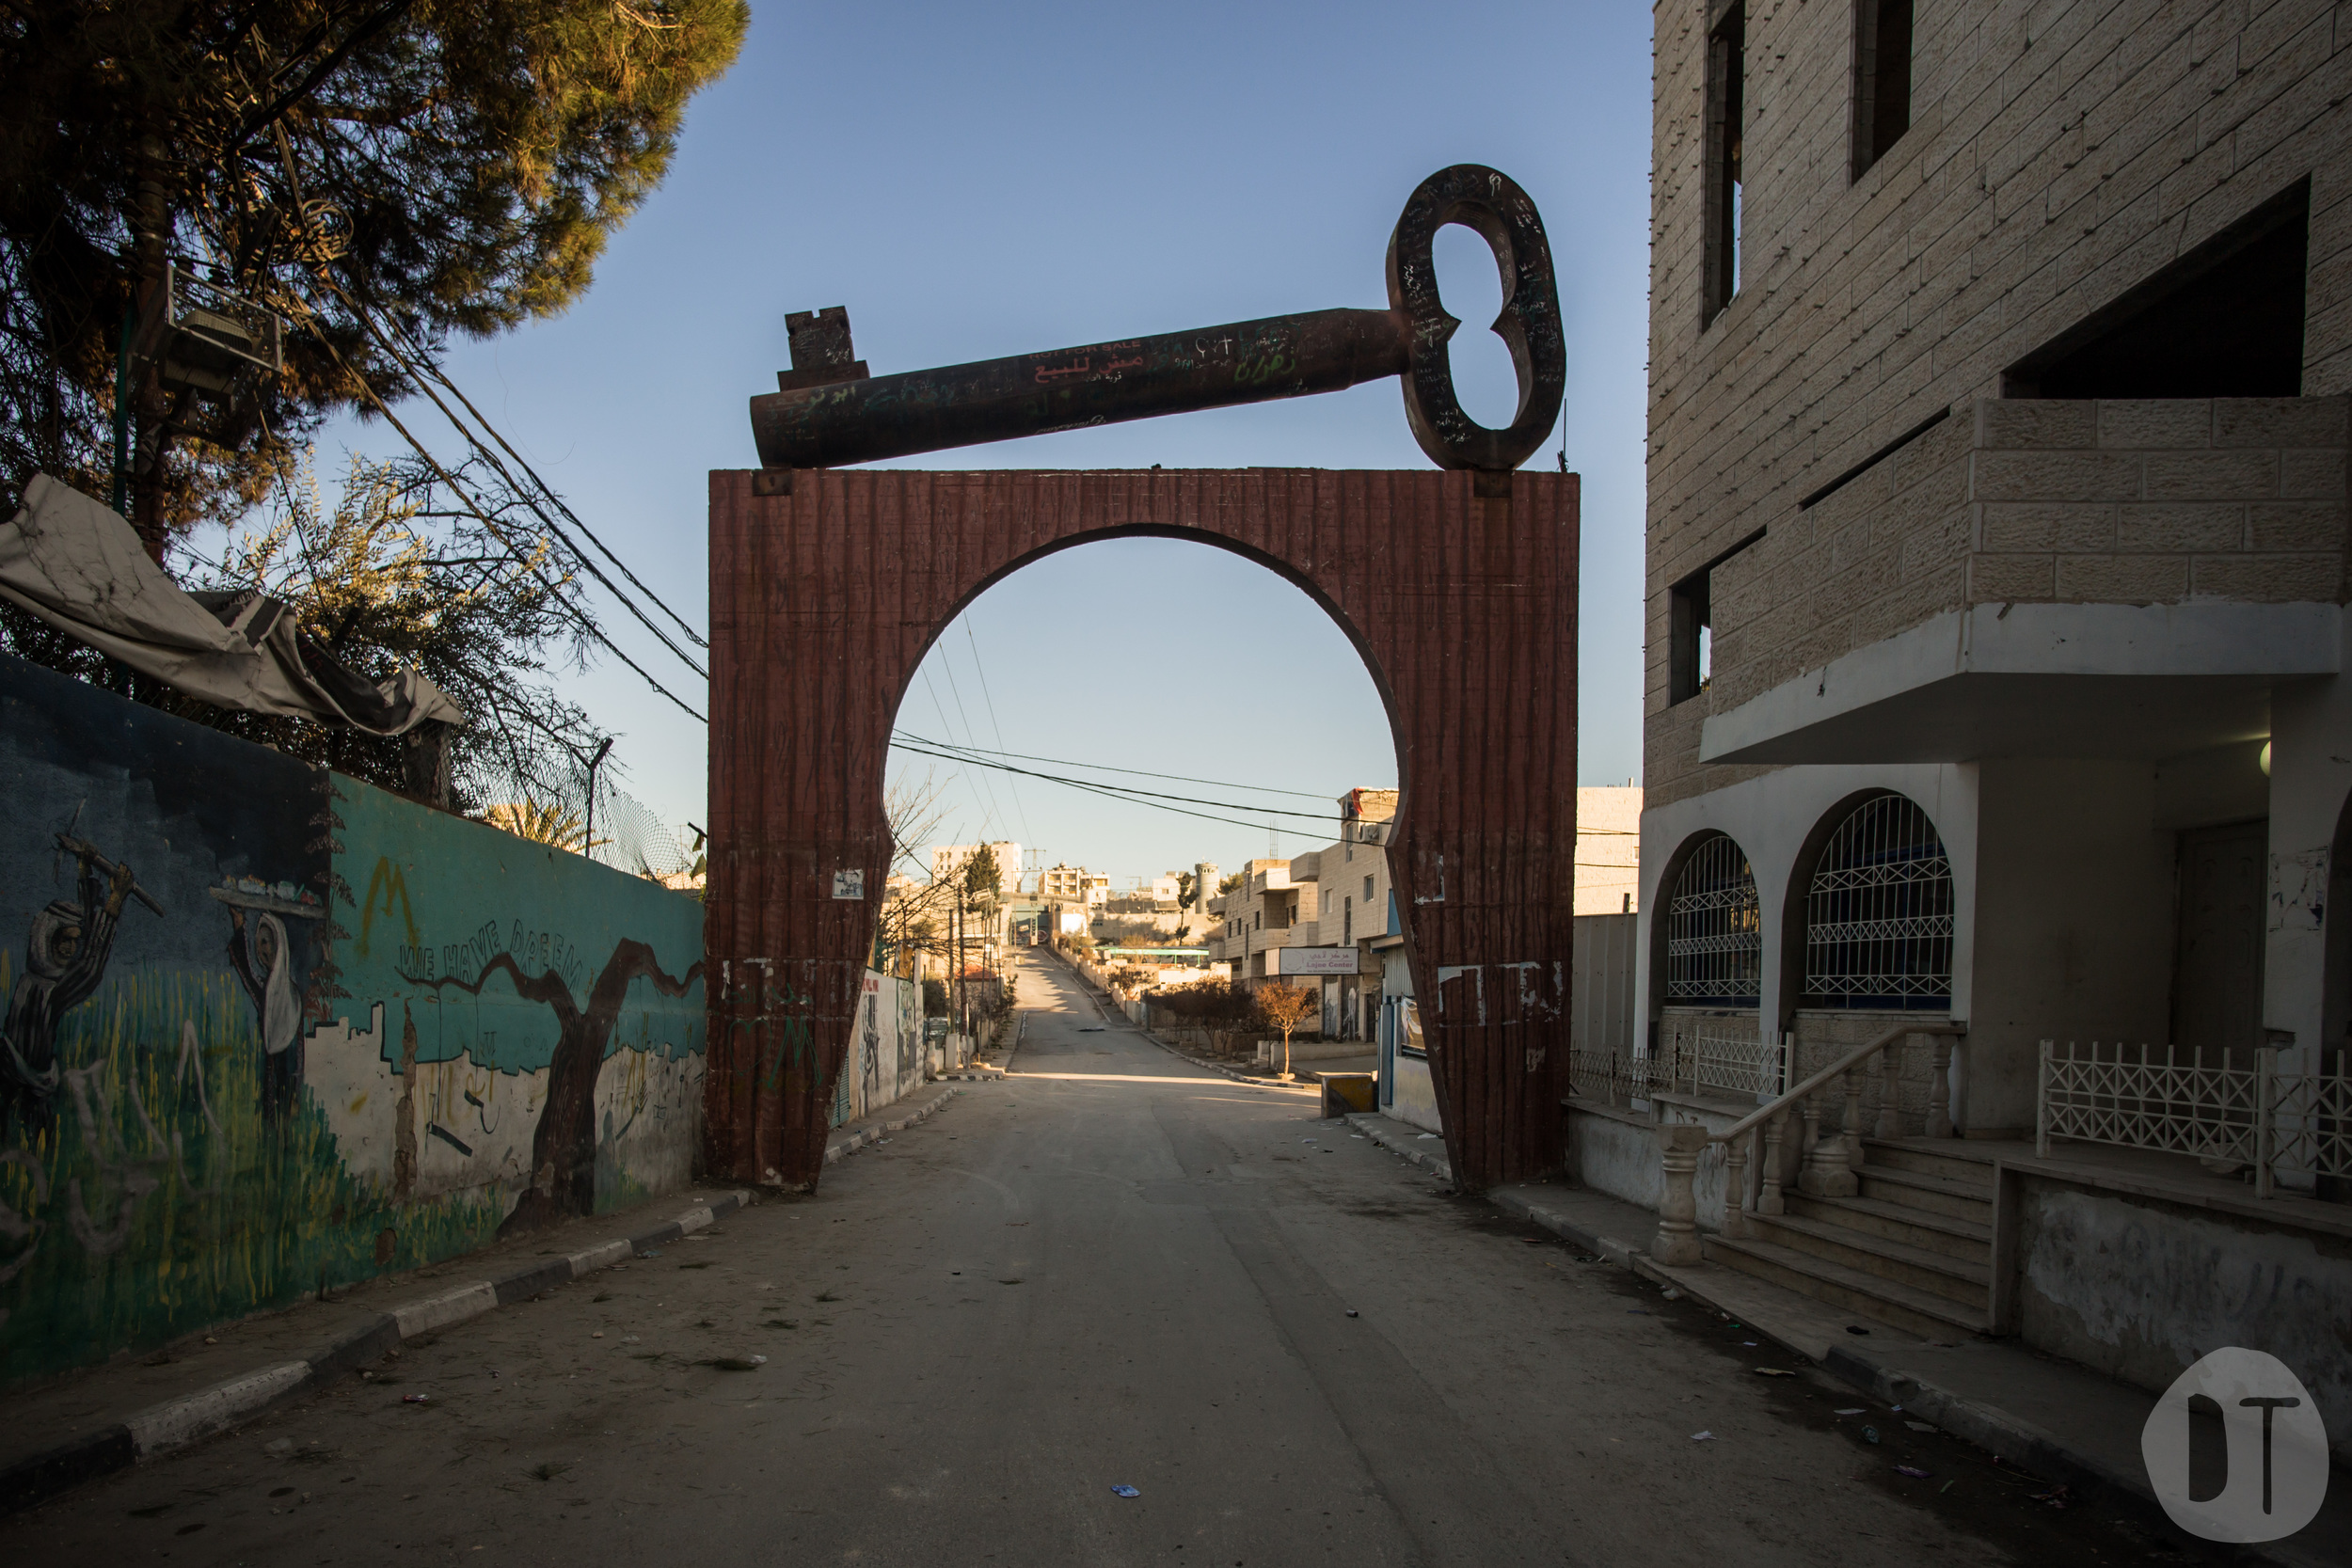 The two tonne 'Key of Return' at the entrance of the Aida Refugee Camp was installed in 2008 - it was featured at the 7th Berlin Biennale in 2012.